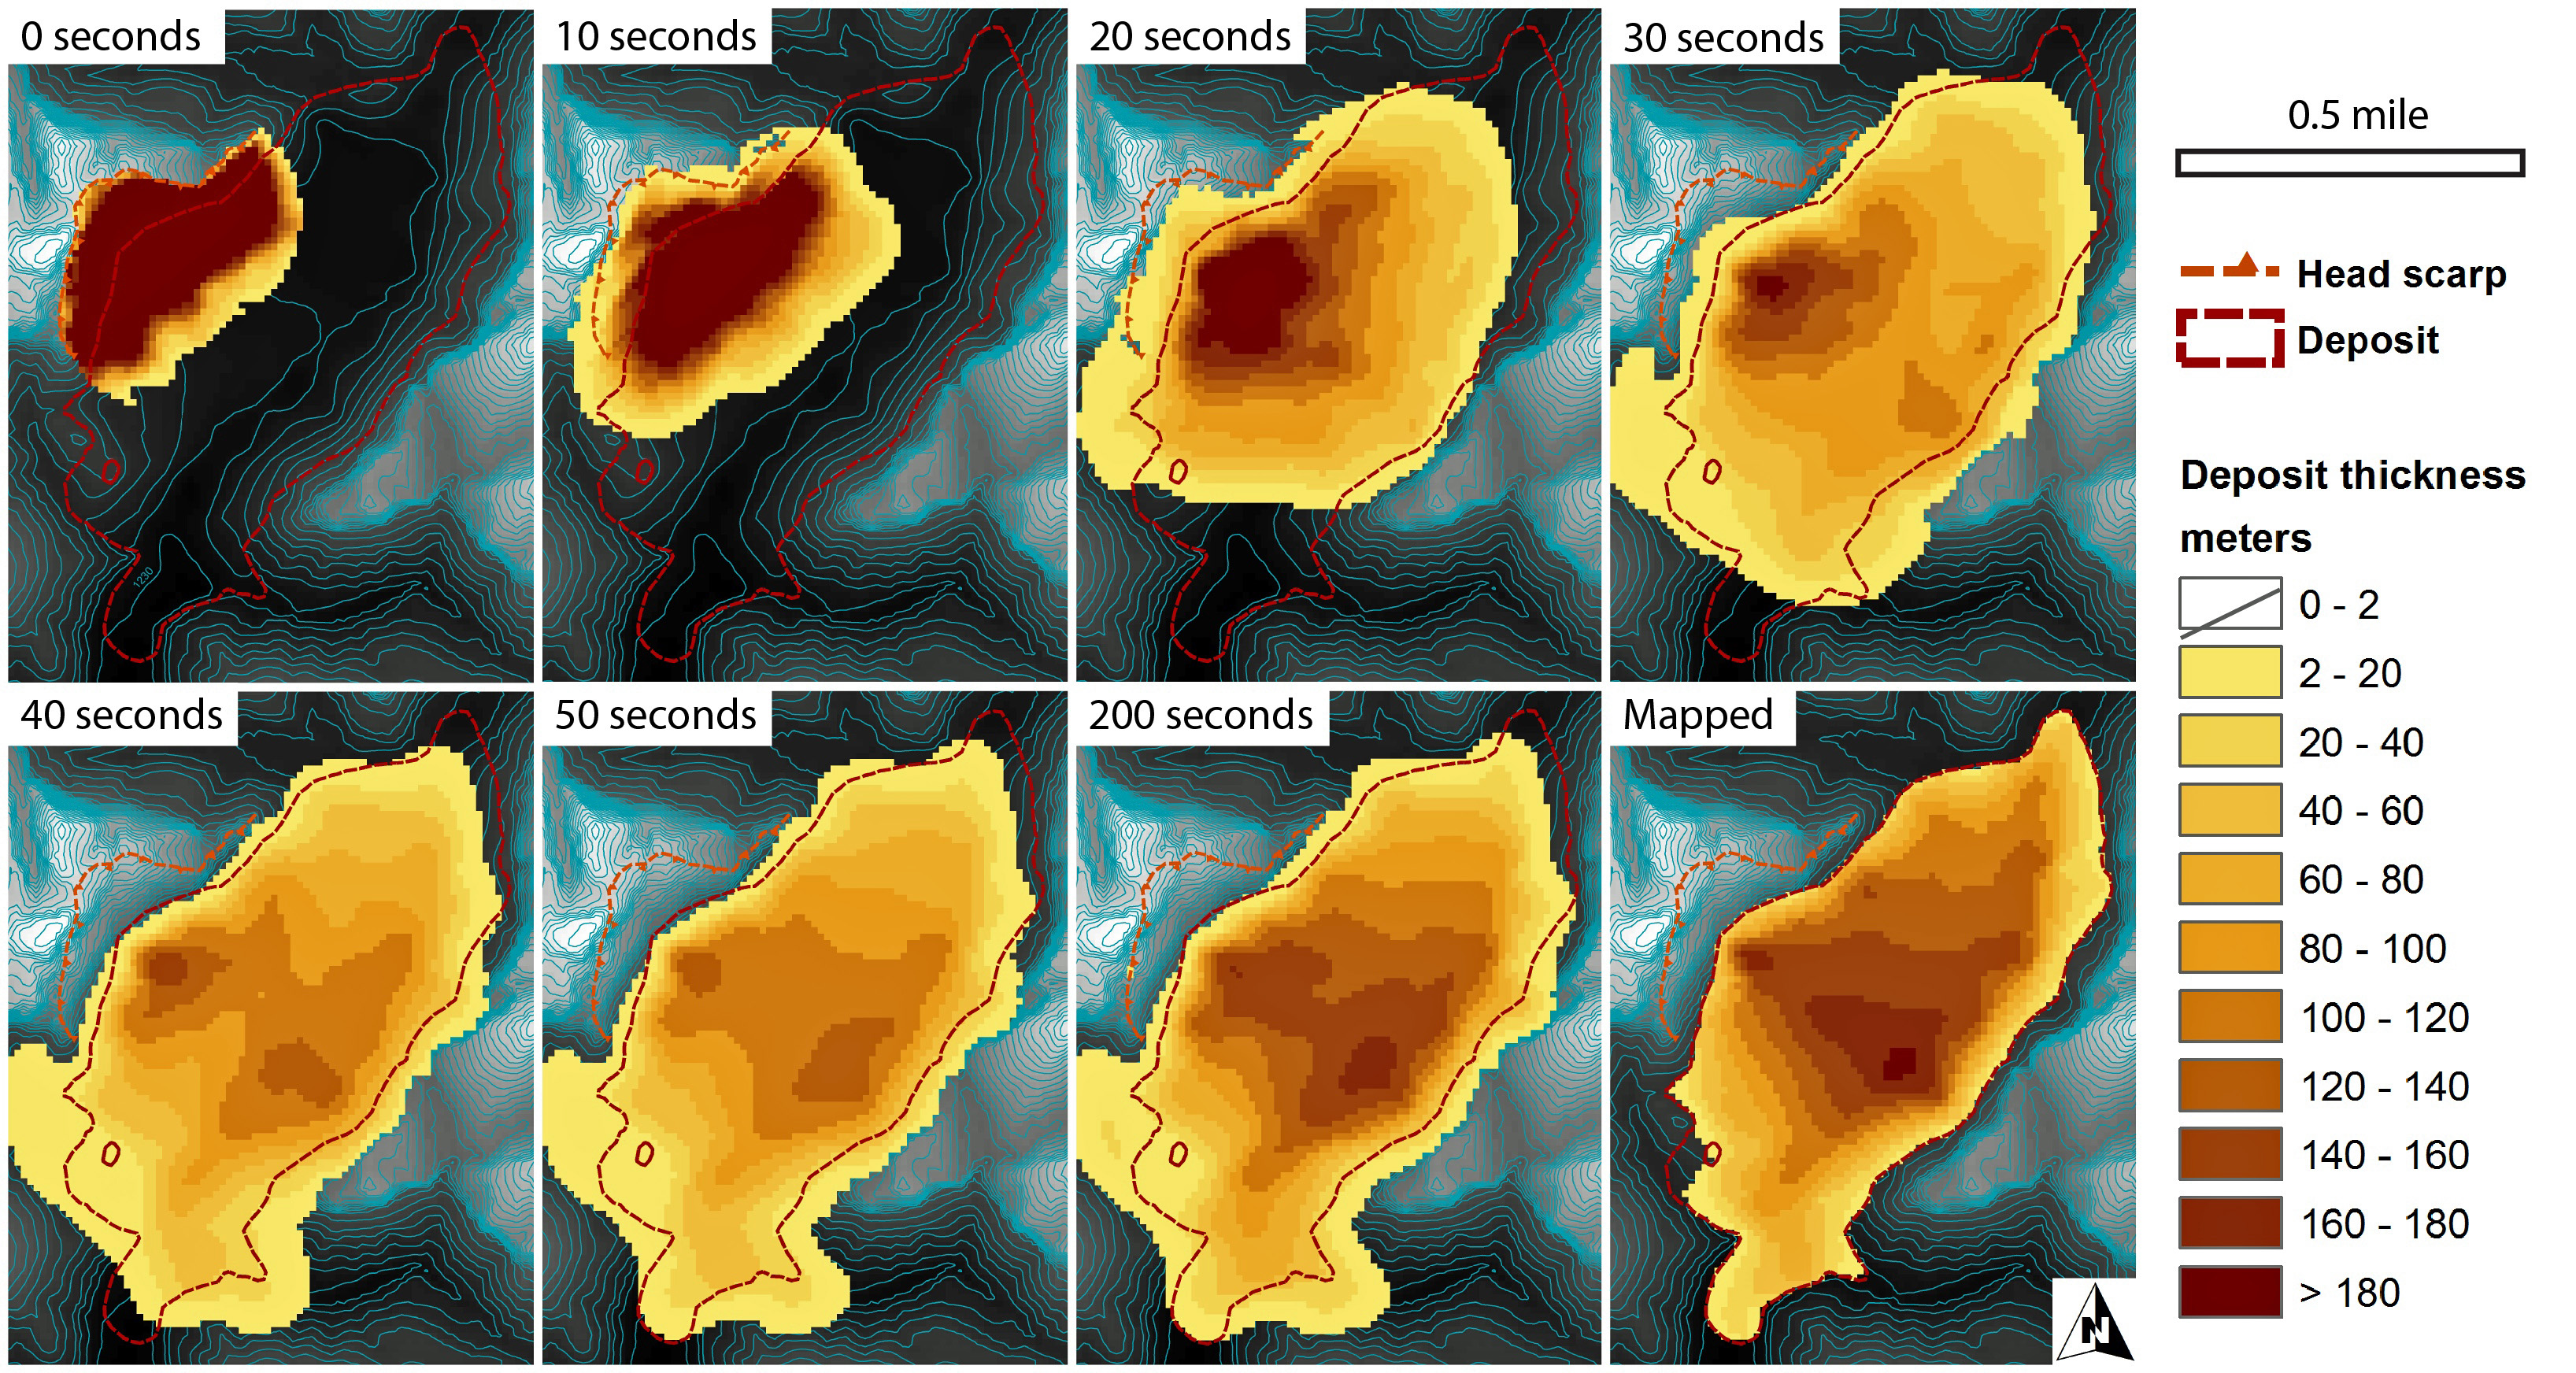 A computer-simulated time sequence of the gargantuan Sentinel landslide in Zion Canyon 4,8000 years ago is shown here. The first six frames show the progress of the rock-avalanche landslide, which lasted about a minute. Darker brown indicates thicker slide deposits, while yellow indicates thinner deposits. The last two frames compare the slide after it was at a complete standstill after 200 seconds with a reconstruction of the actual landslide deposit based on geological mapping. That shows the simulation is close to reality.